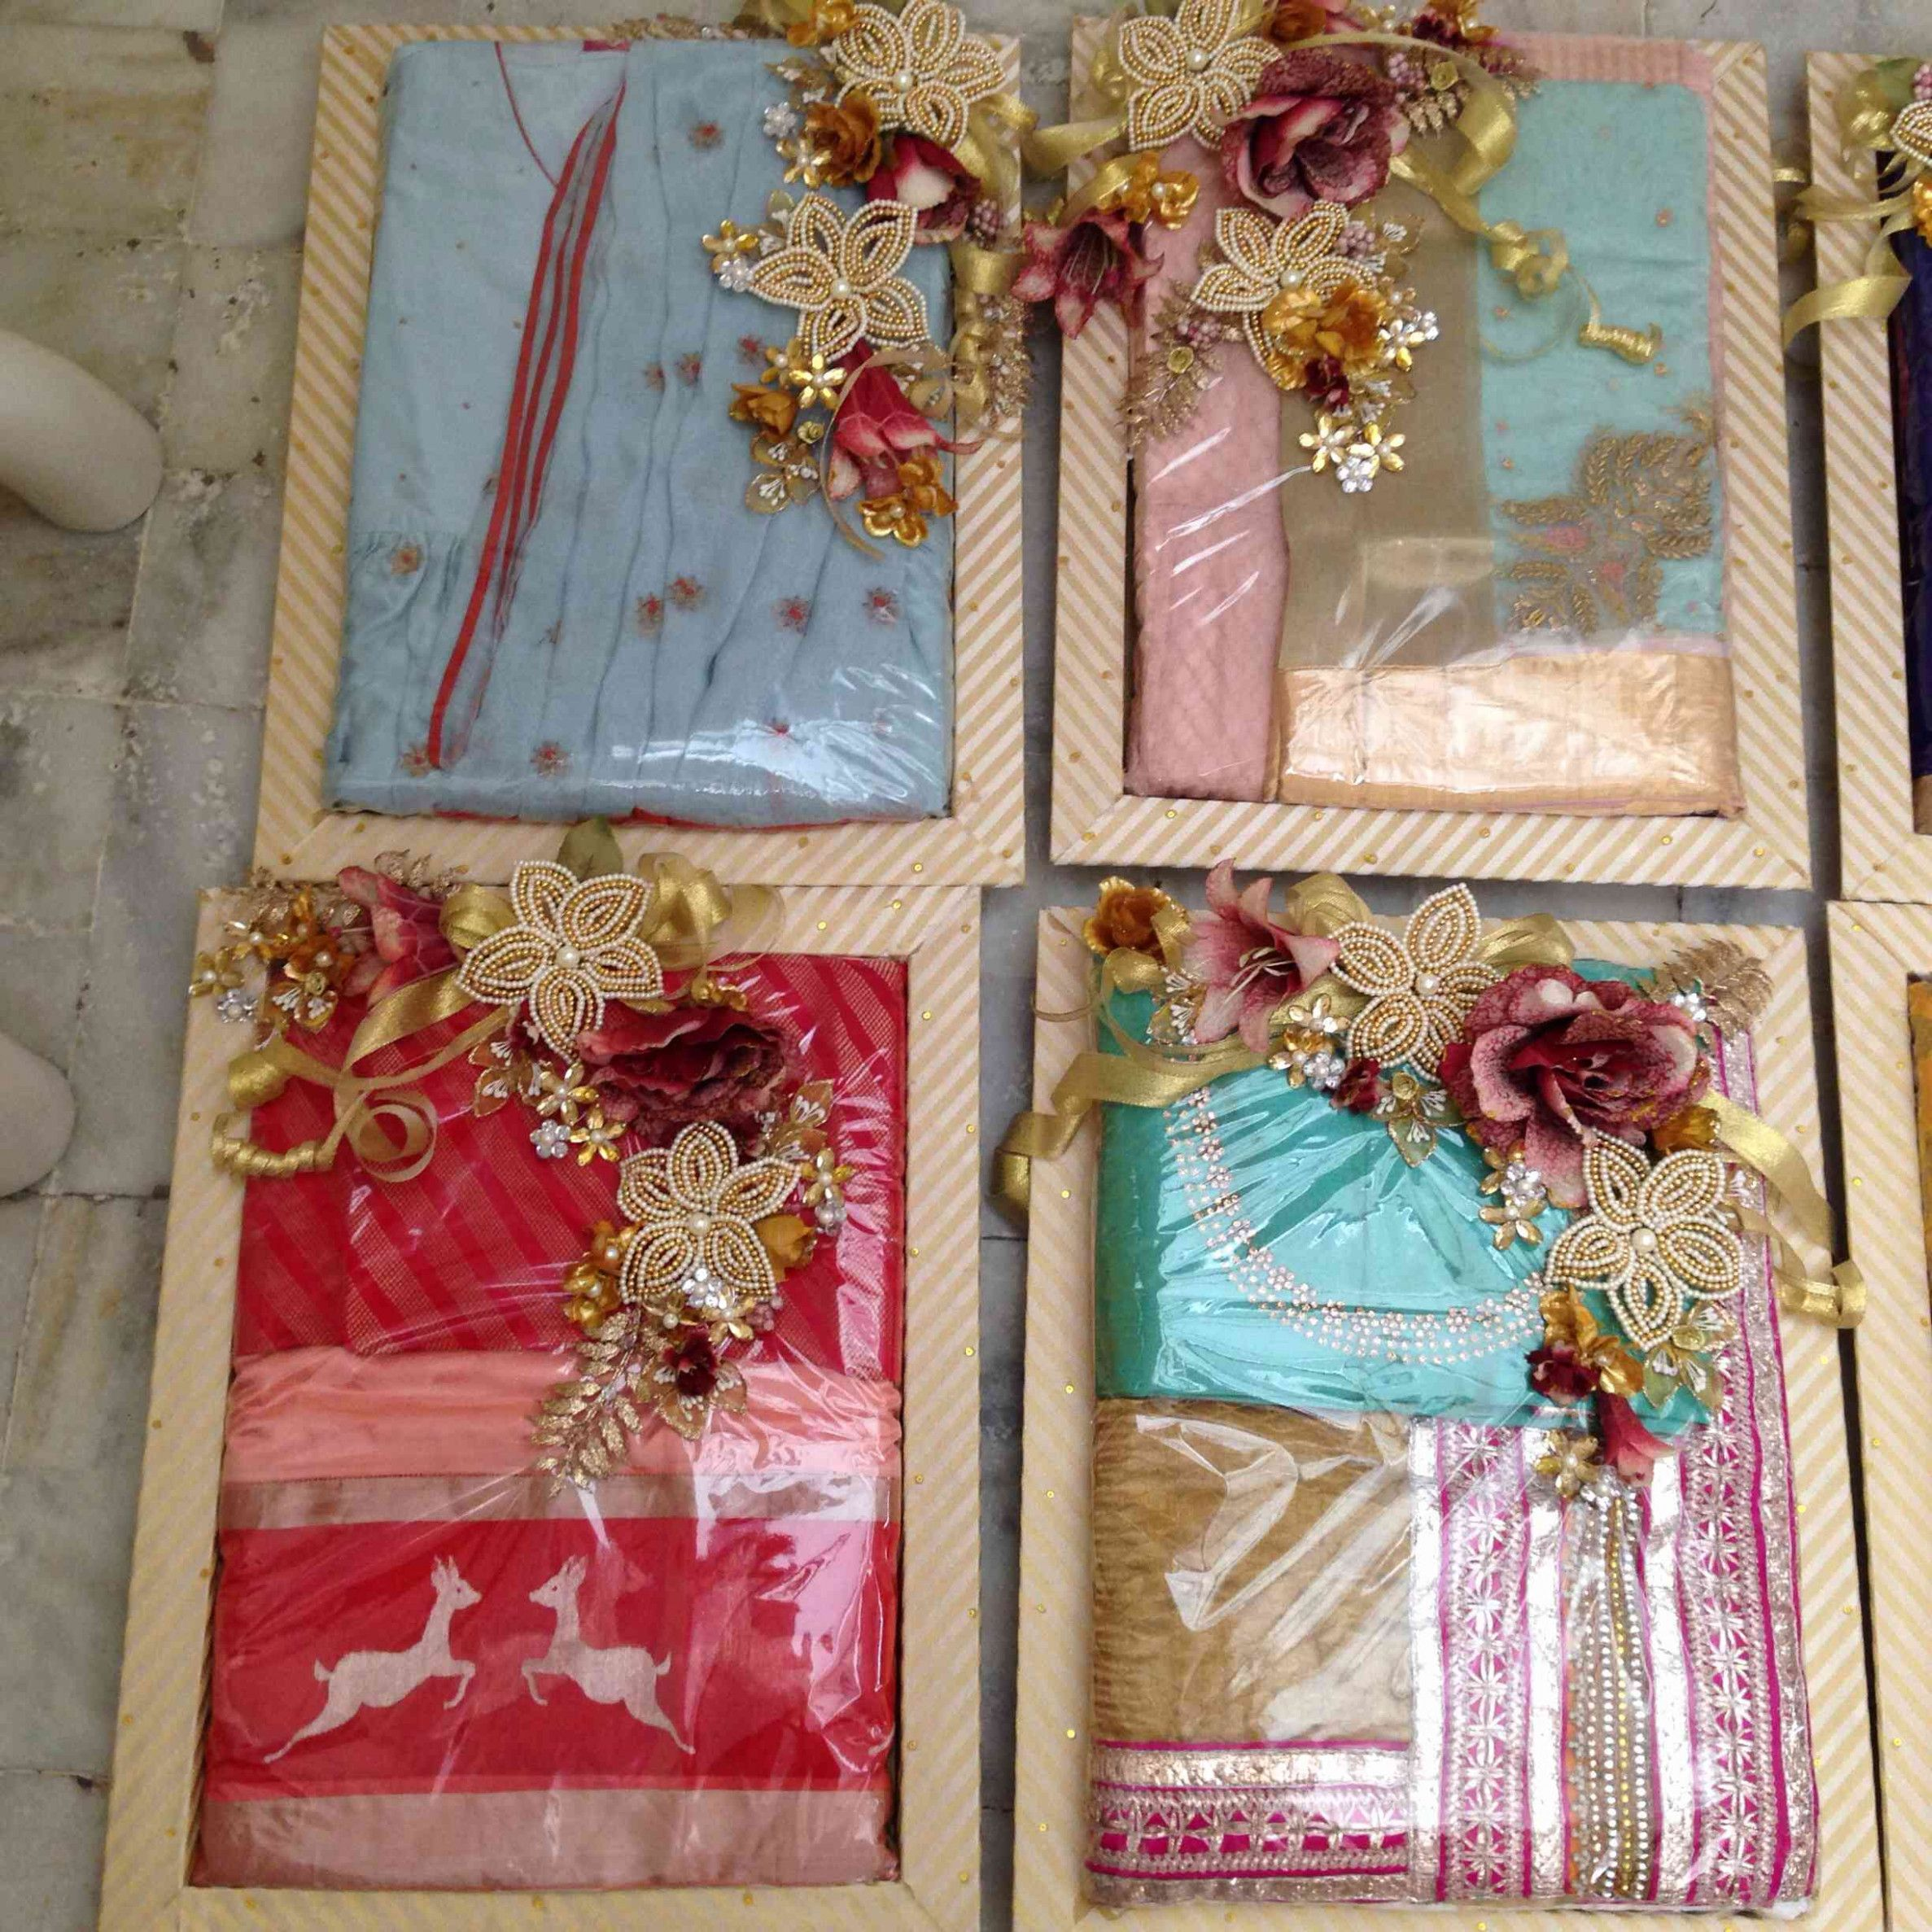 Send Wedding Gift To India: Indian Wedding Gifts For Bride